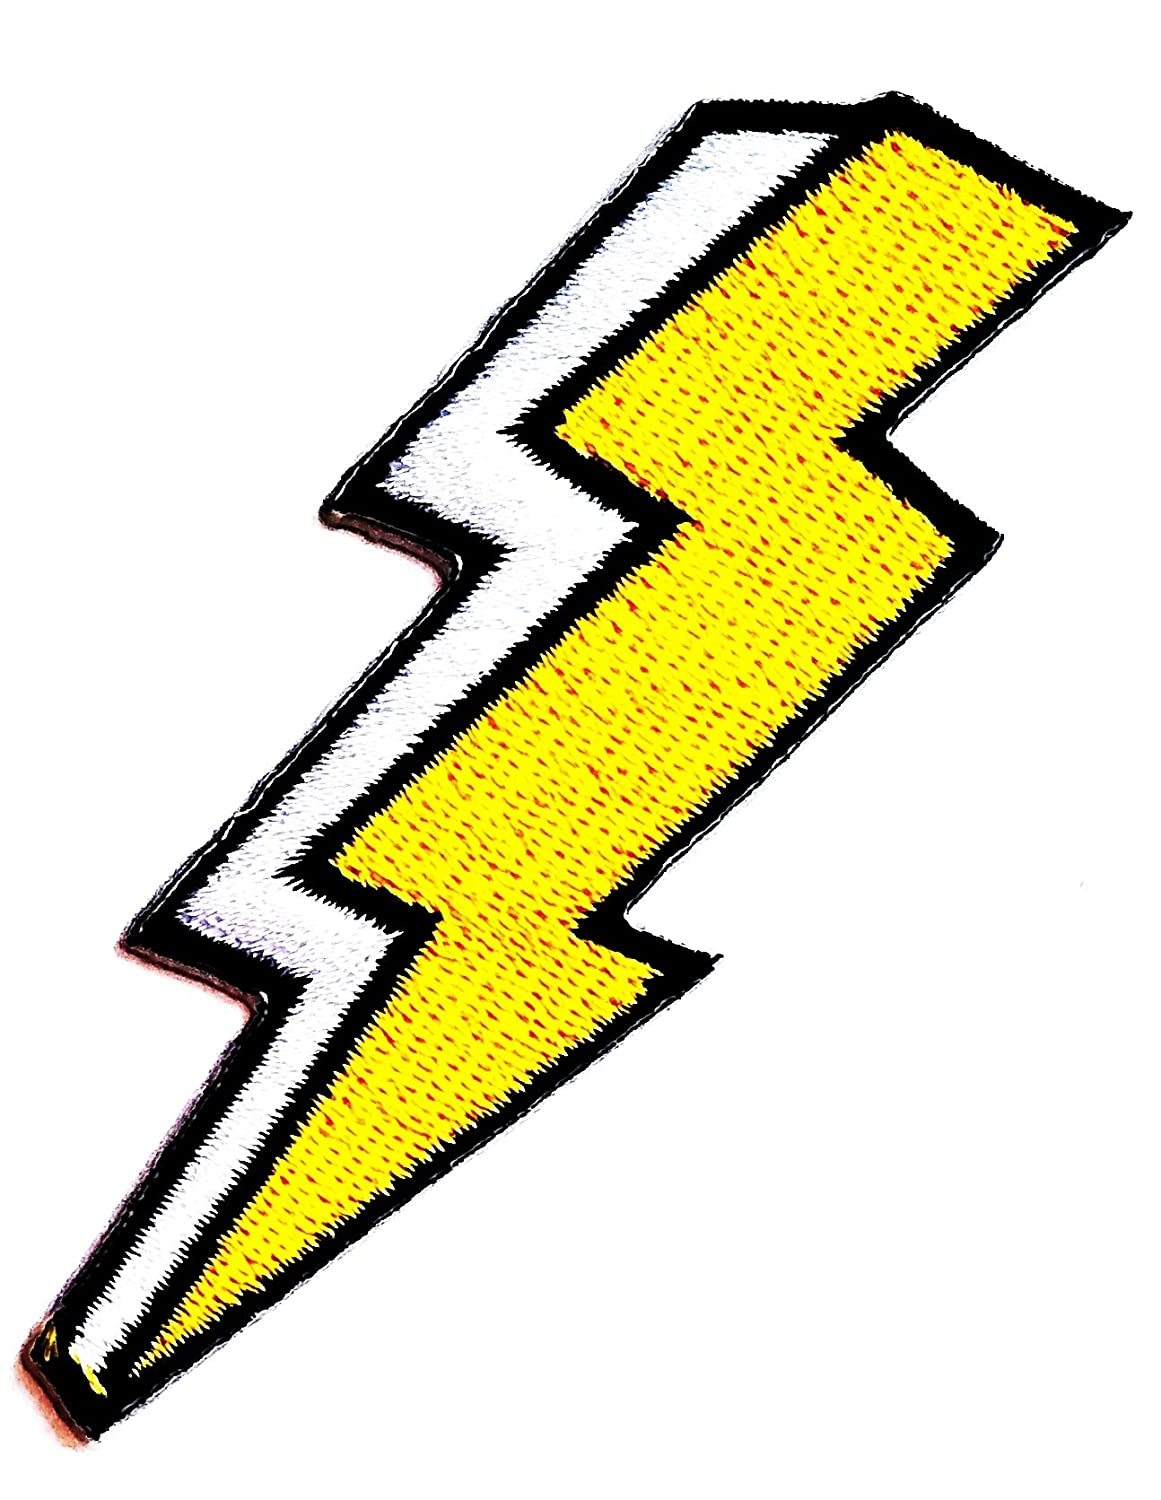 Nipitshop Patches Yellow Flash Storm Lighting Thunderbolt Cartoon Kids Patch Embroidered Iron On Patch for Clothes Backpacks T-Shirt Jeans Skirt Vests Scarf Hat Bag